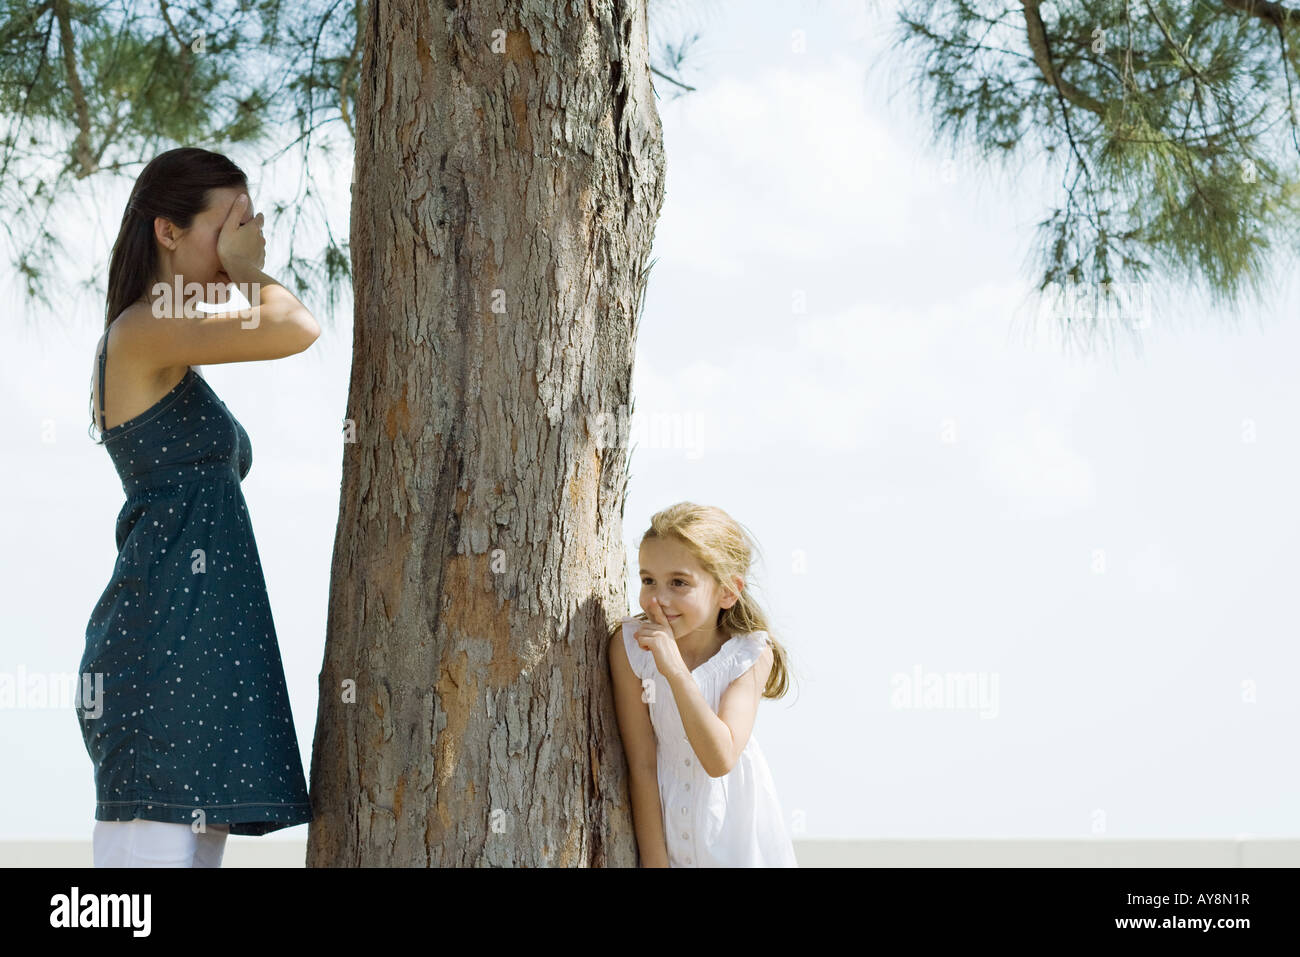 Two sisters playing hide-and-seek, one covering eyes with hands, the other peeking around tree trunk - Stock Image